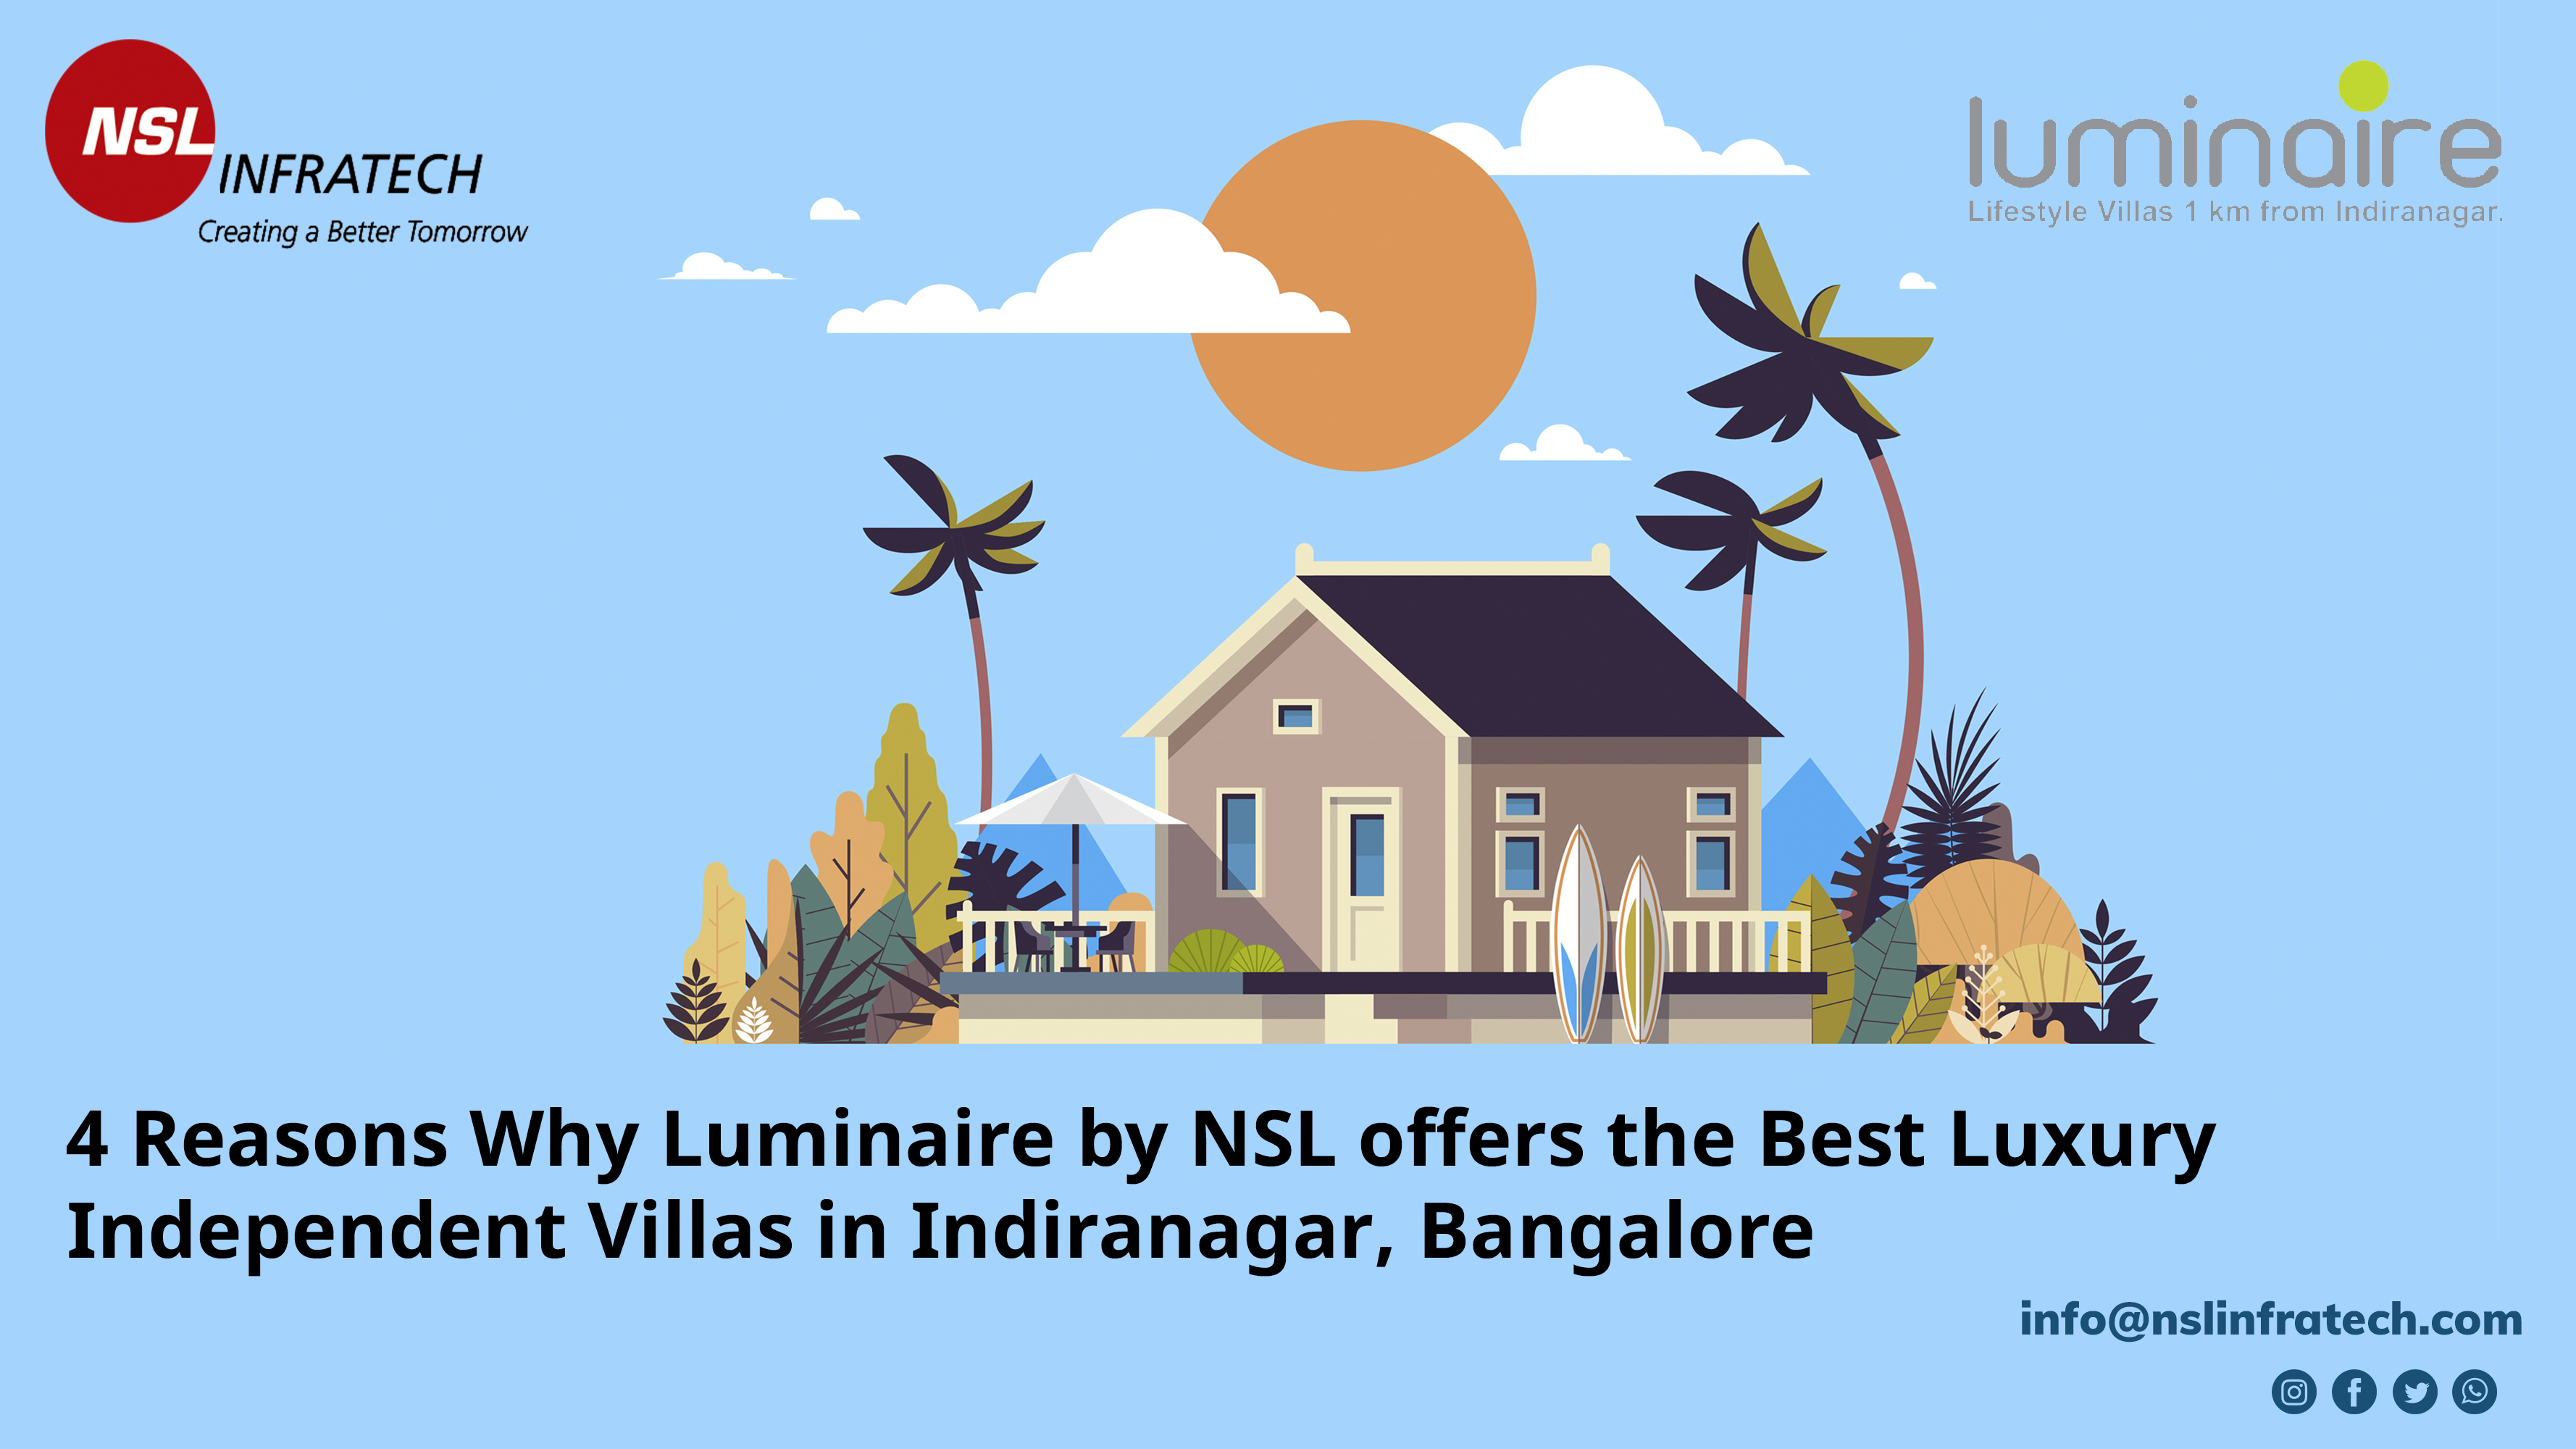 4 Reasons Why Luminaire by NSL offers the Best Luxury Independent Villas in Indiranagar, Bangalore